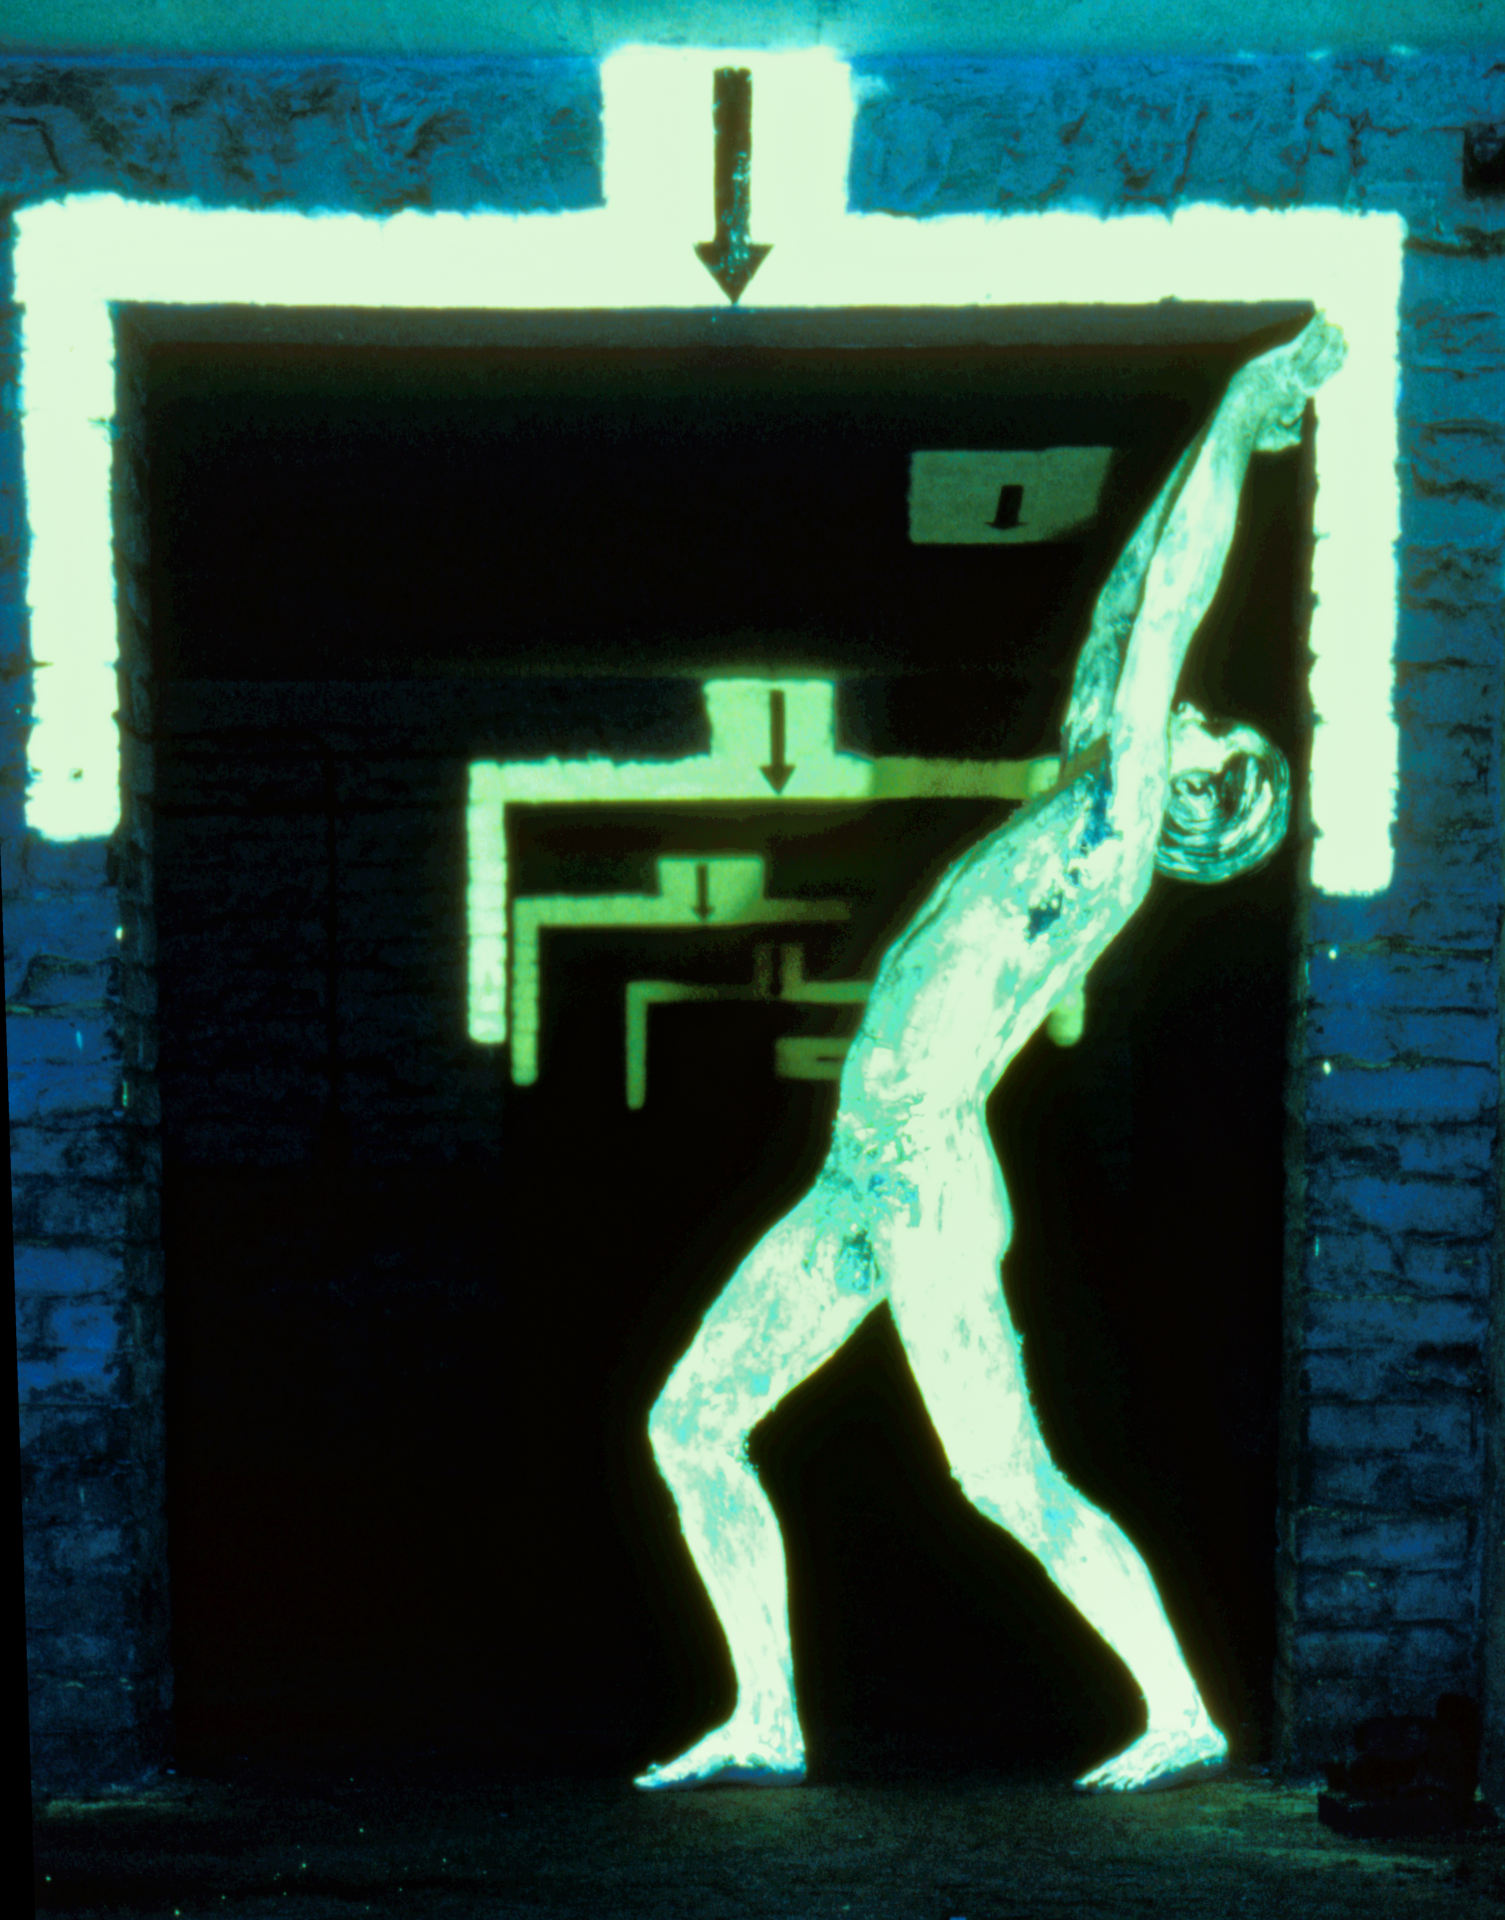 daniel_hausig_safelight_1987_light-performances